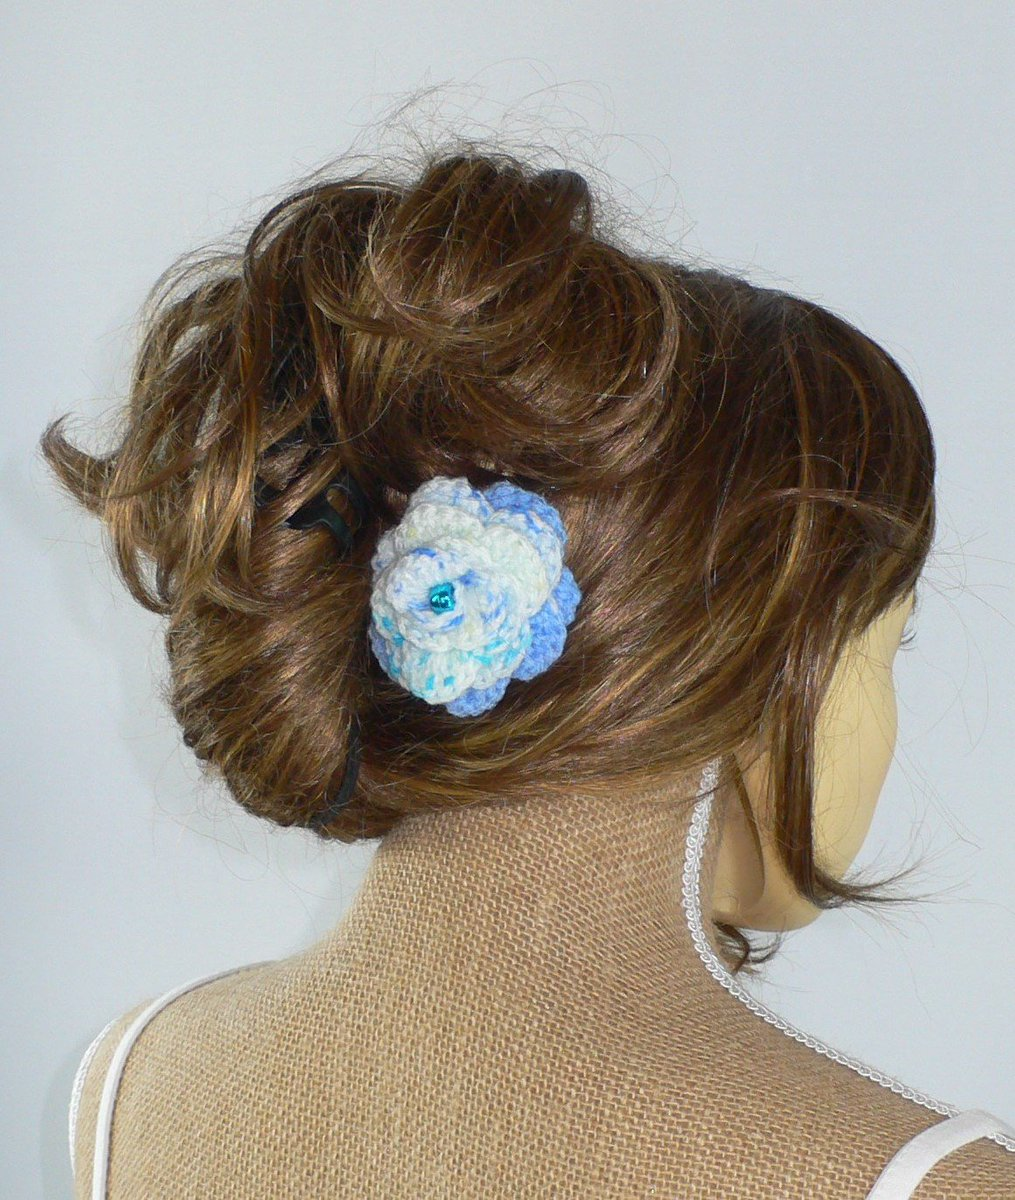 Rocking Pony On Twitter Handmade Hair Accessories At Rocking Pony